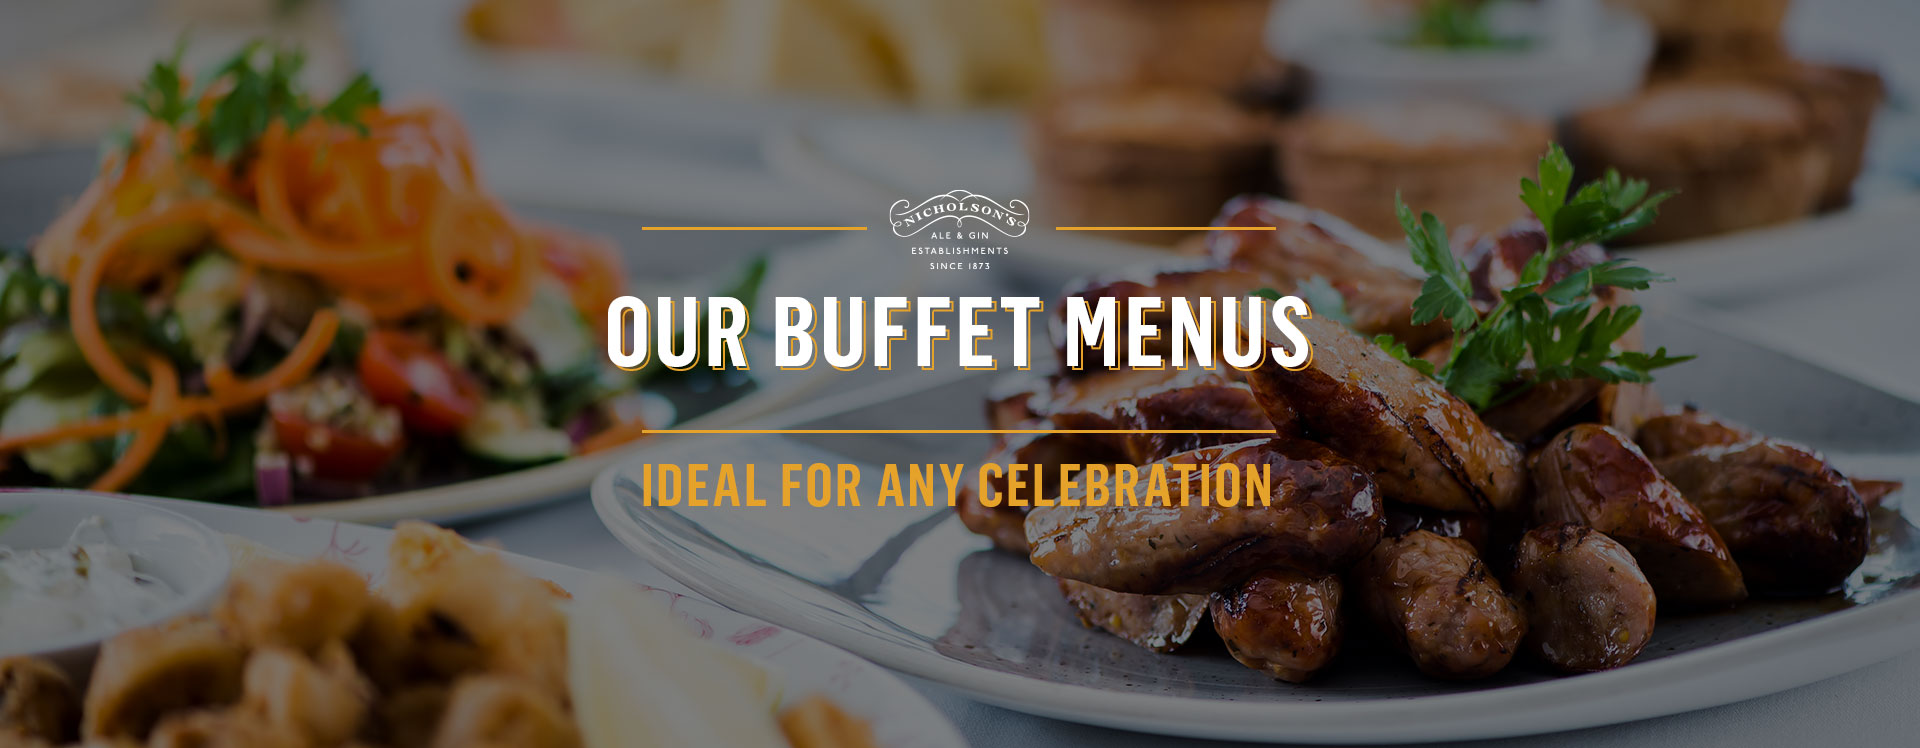 Buffet menu at The Observatory - Book a table